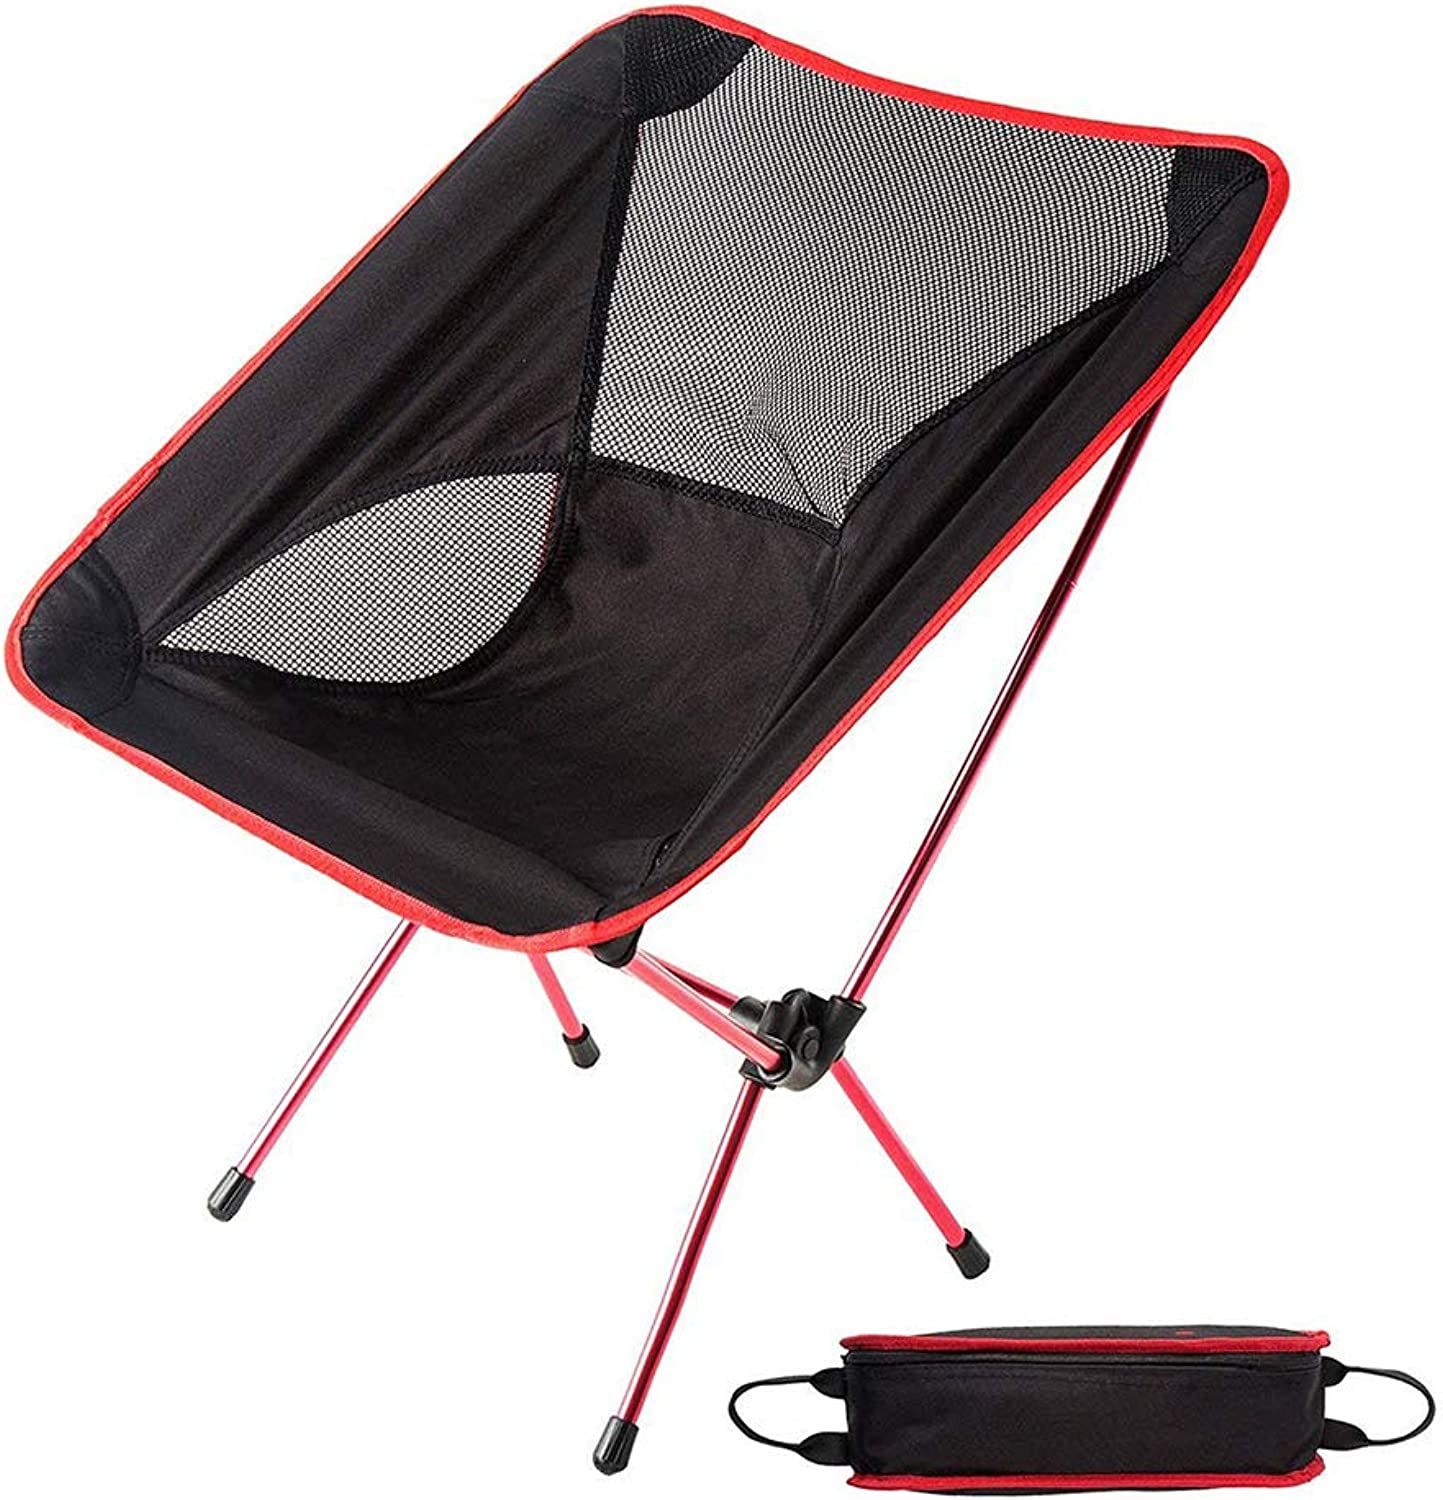 Folding Camp Chair,Ultralight Portable Folding Camping Backpacking Chair,with Carry Bag,for Outdoor, Camping, BBQ, Beach, Travel, Picnic